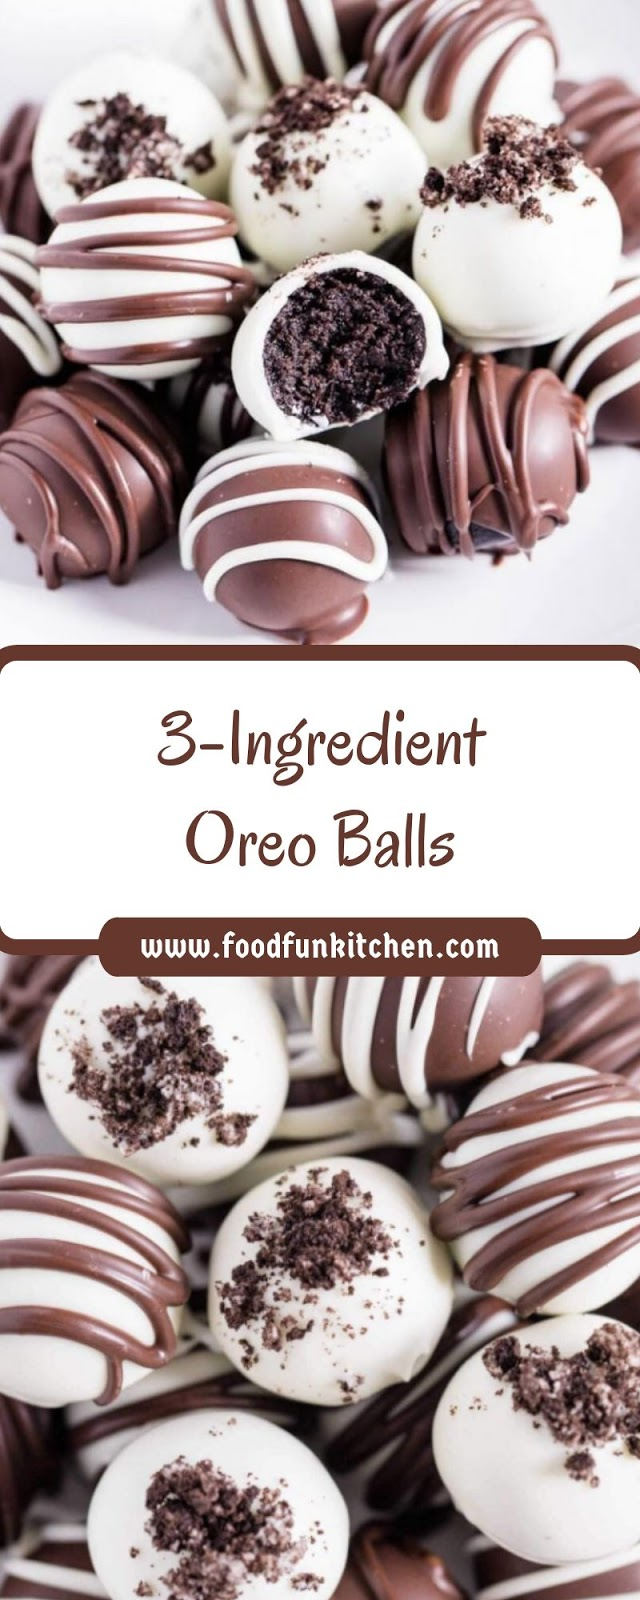 3-INGREDIENT OREO BALLS